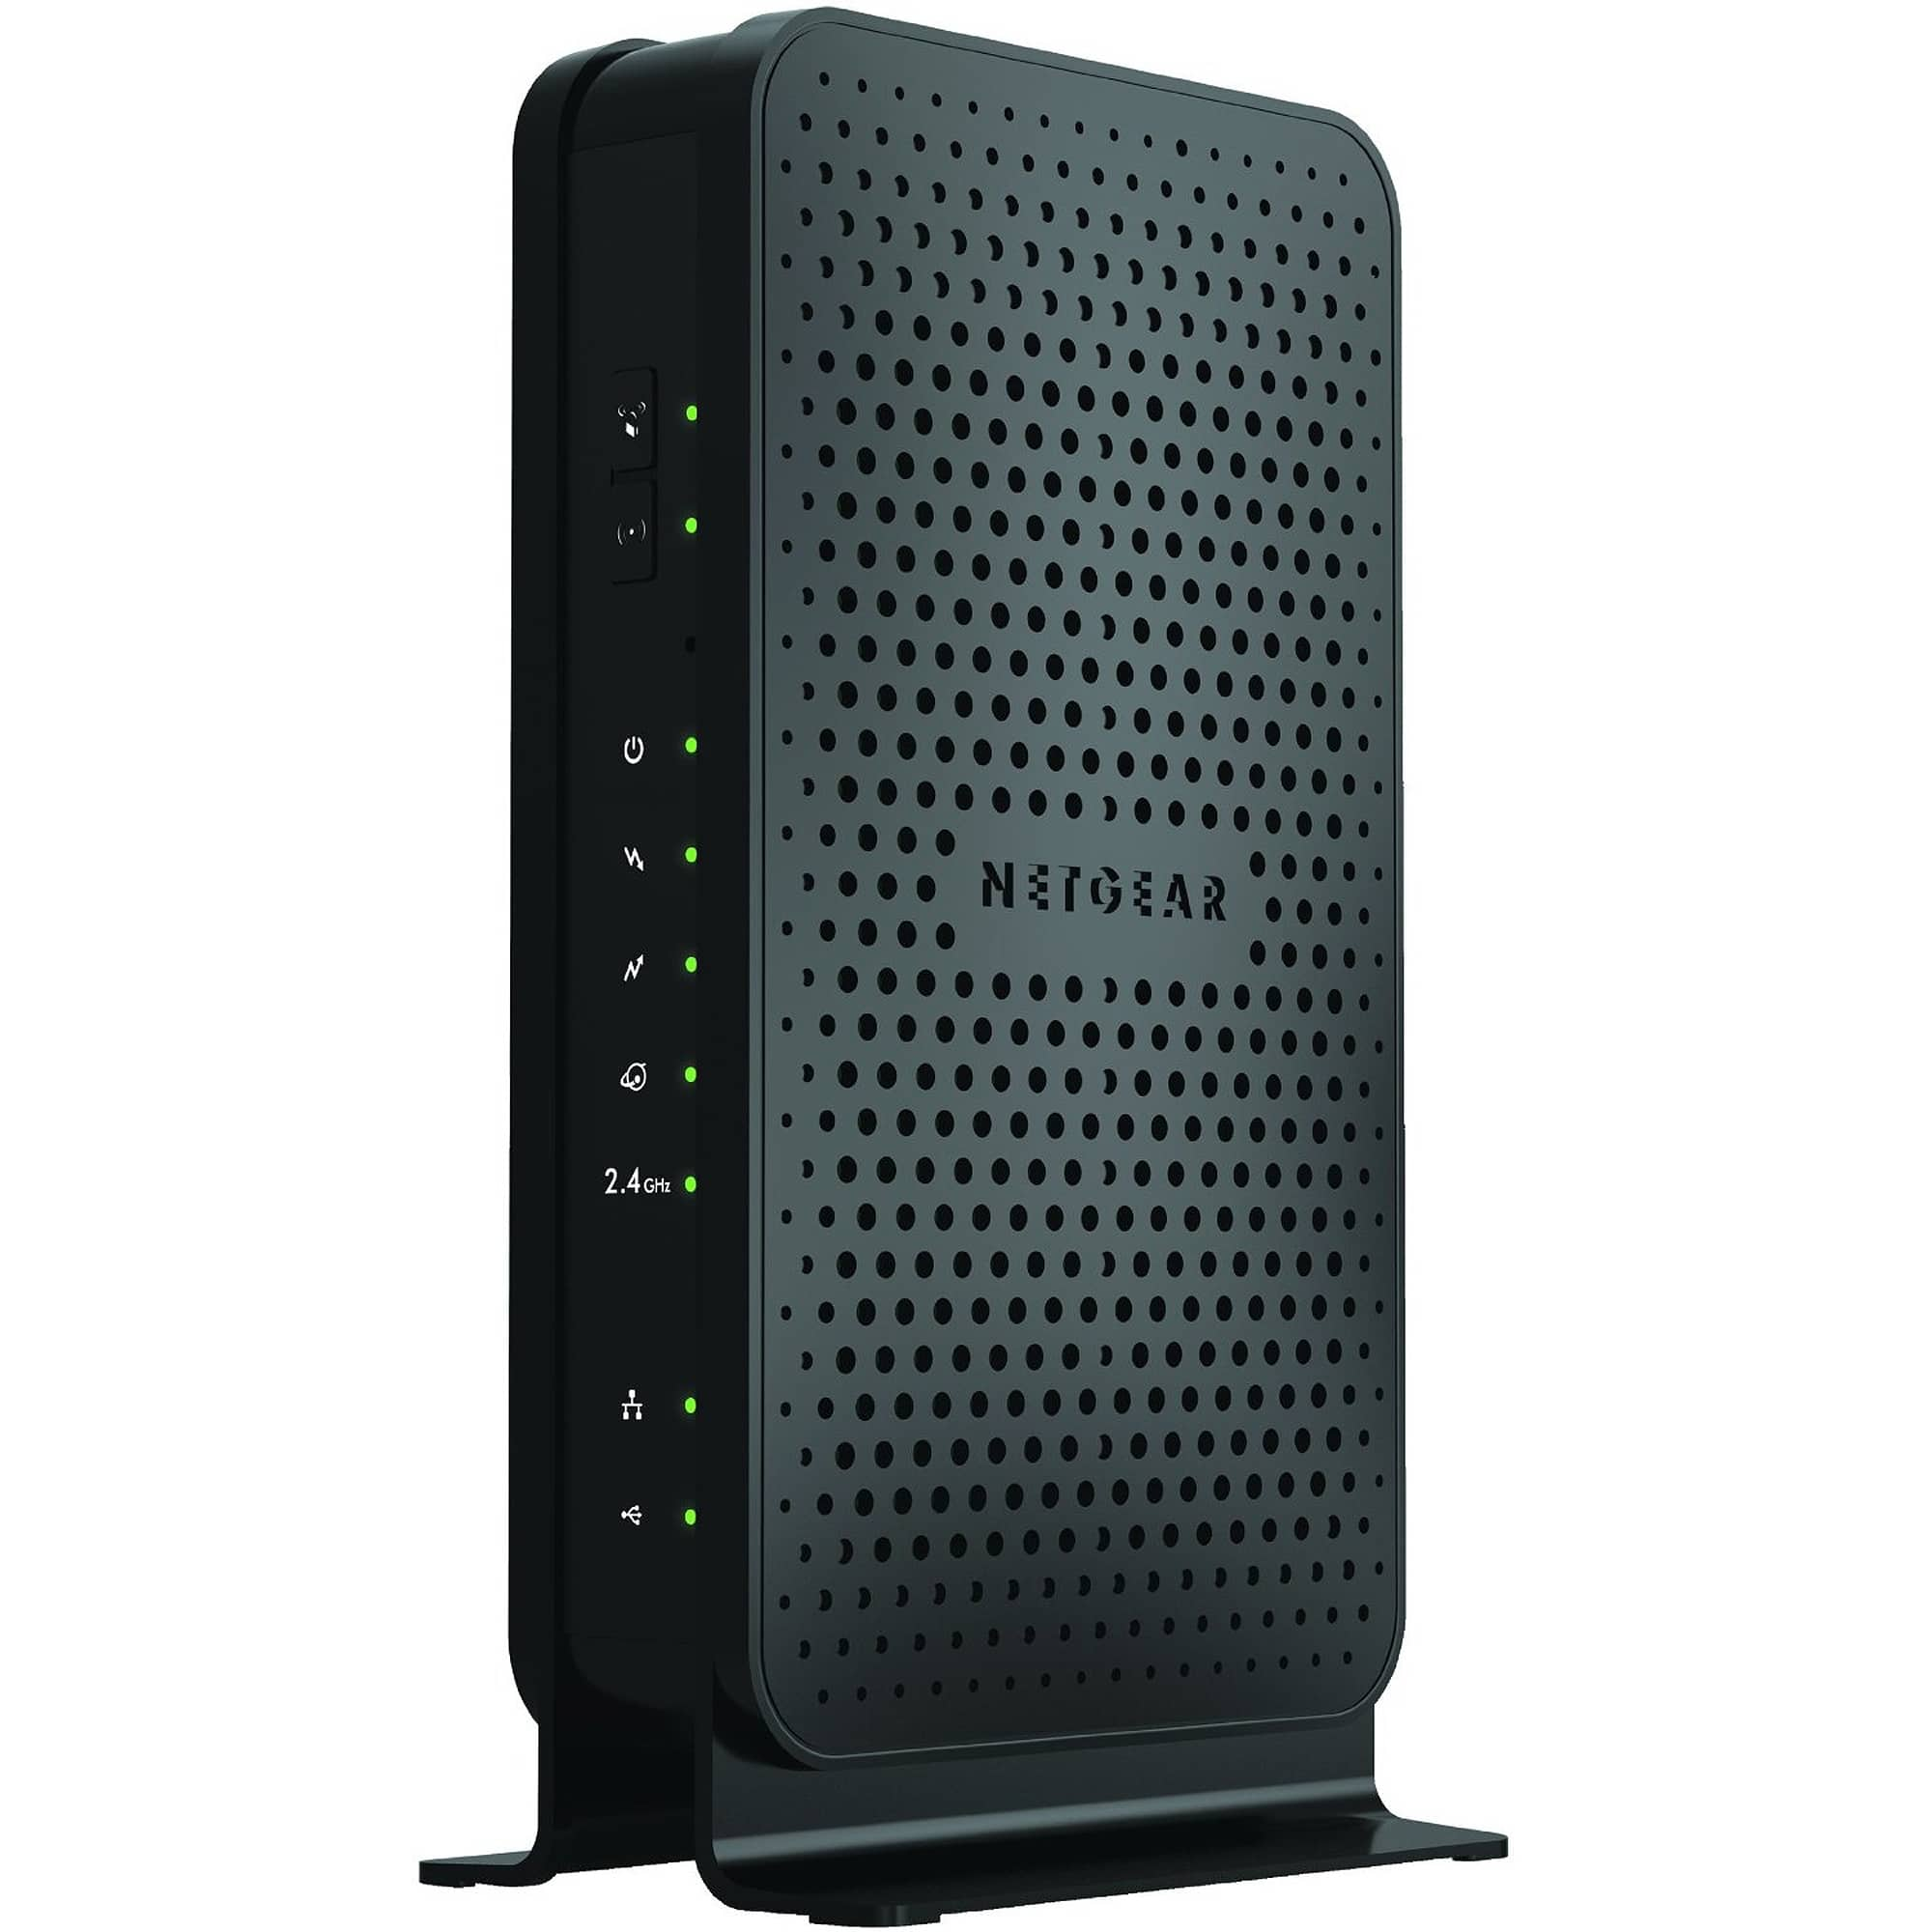 Refurbished ARRIS SURFboard SB6121 DOCSIS 3.0 Cable Modem $26.97 at Walmart